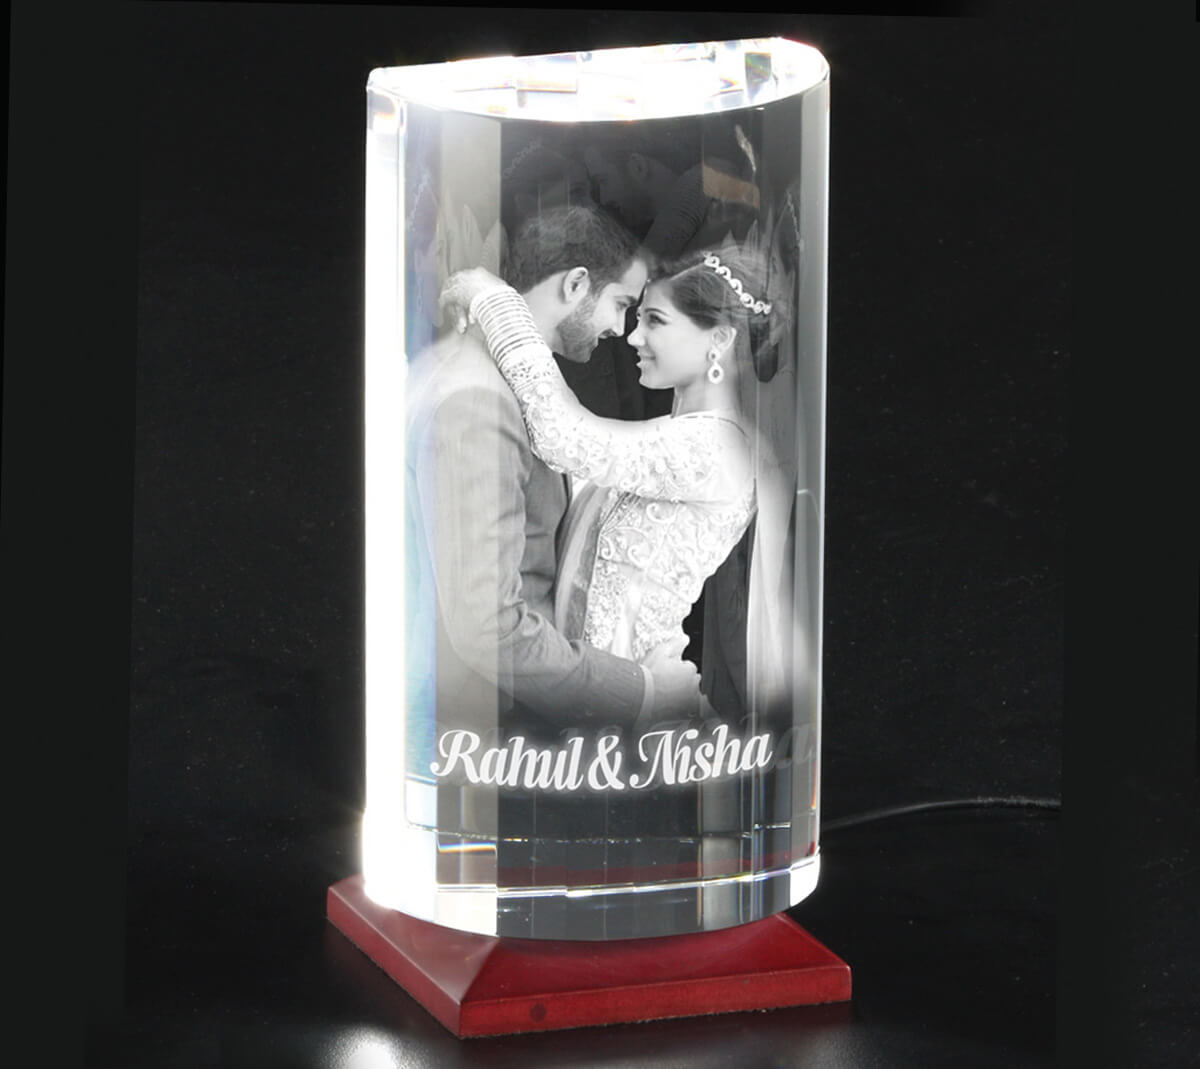 ... wife on the first wedding anniversary. 3D crystal image  sc 1 st  AuGrav.com & 15 First Anniversary Gift Ideas For Wife To Impress Her |